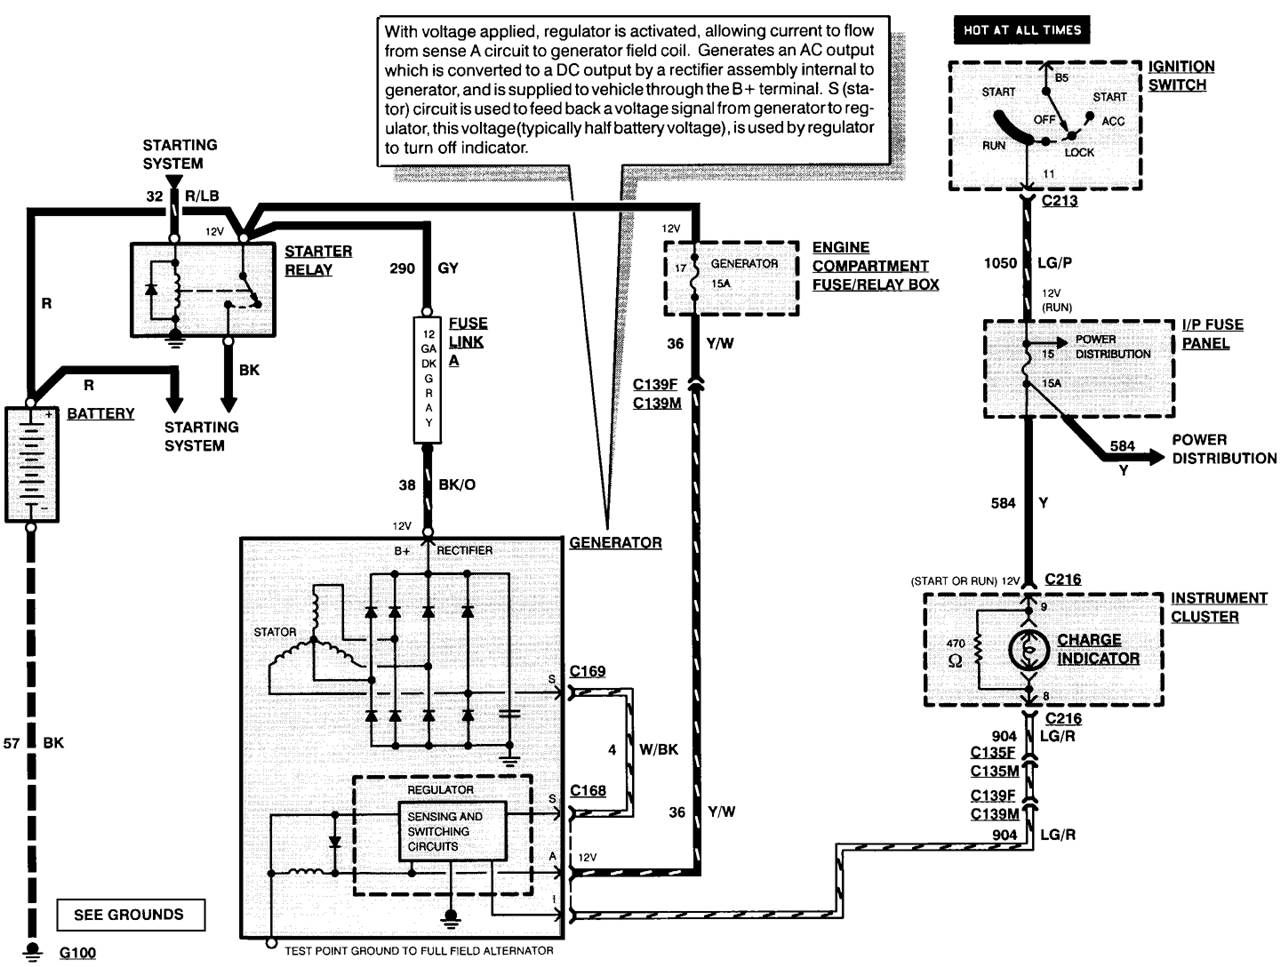 Ford alternator wiring diagram internal regulator ford alternator wiring diagrams carsut understand cars and 2004 ford focus alternator wiring diagram at webbmarketing.co